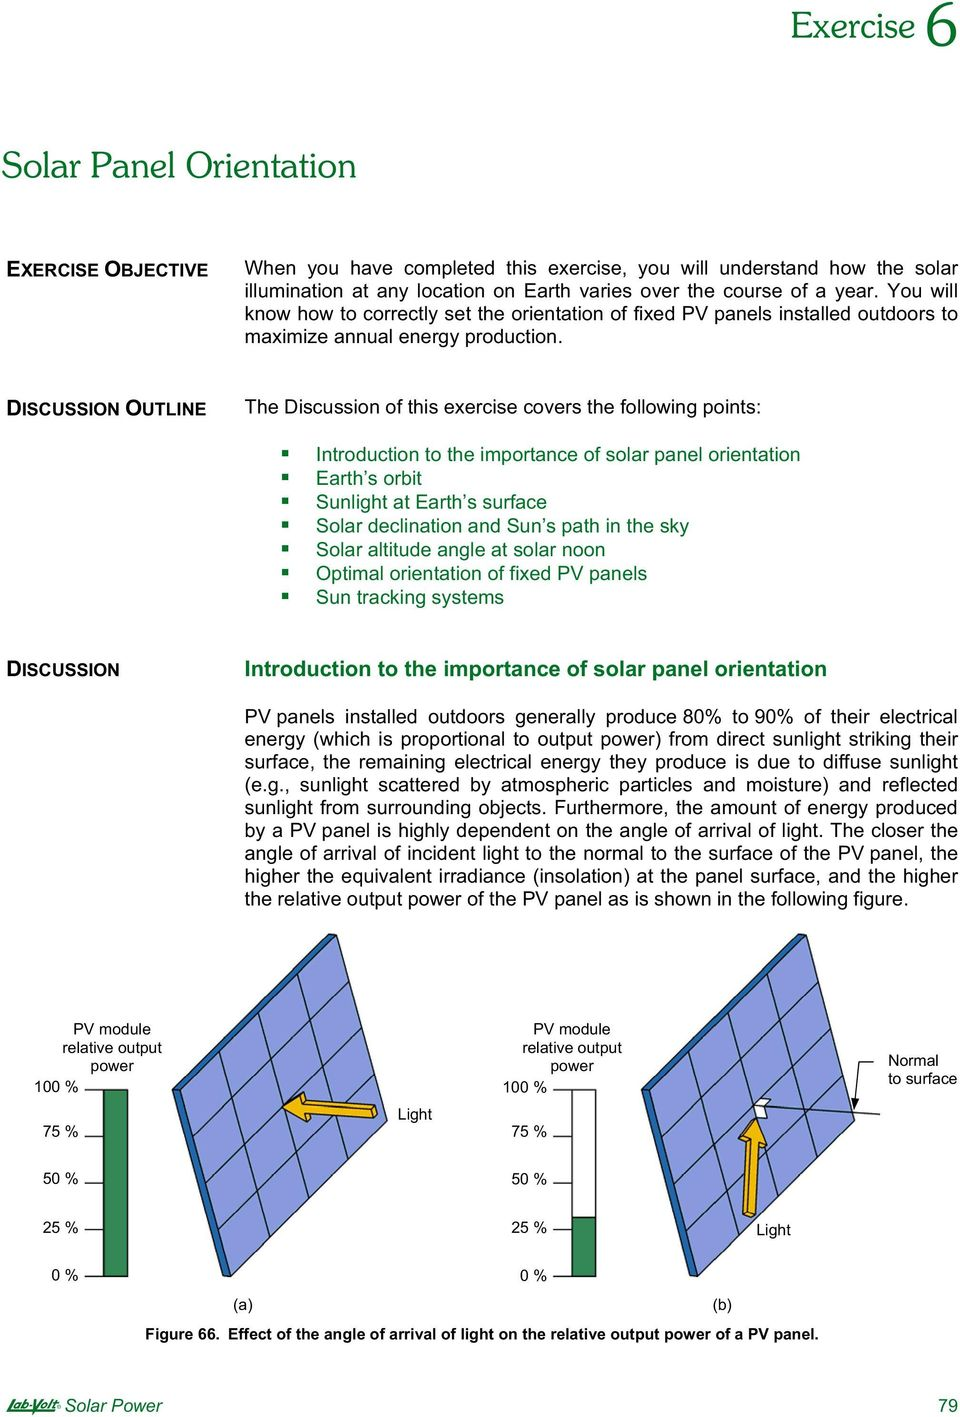 DISCUSSION OUTLINE The Discussion of this exercise covers the following points: Introduction to the importance of solar panel orientation Earth s orbit Sunlight at Earth s surface Solar declination